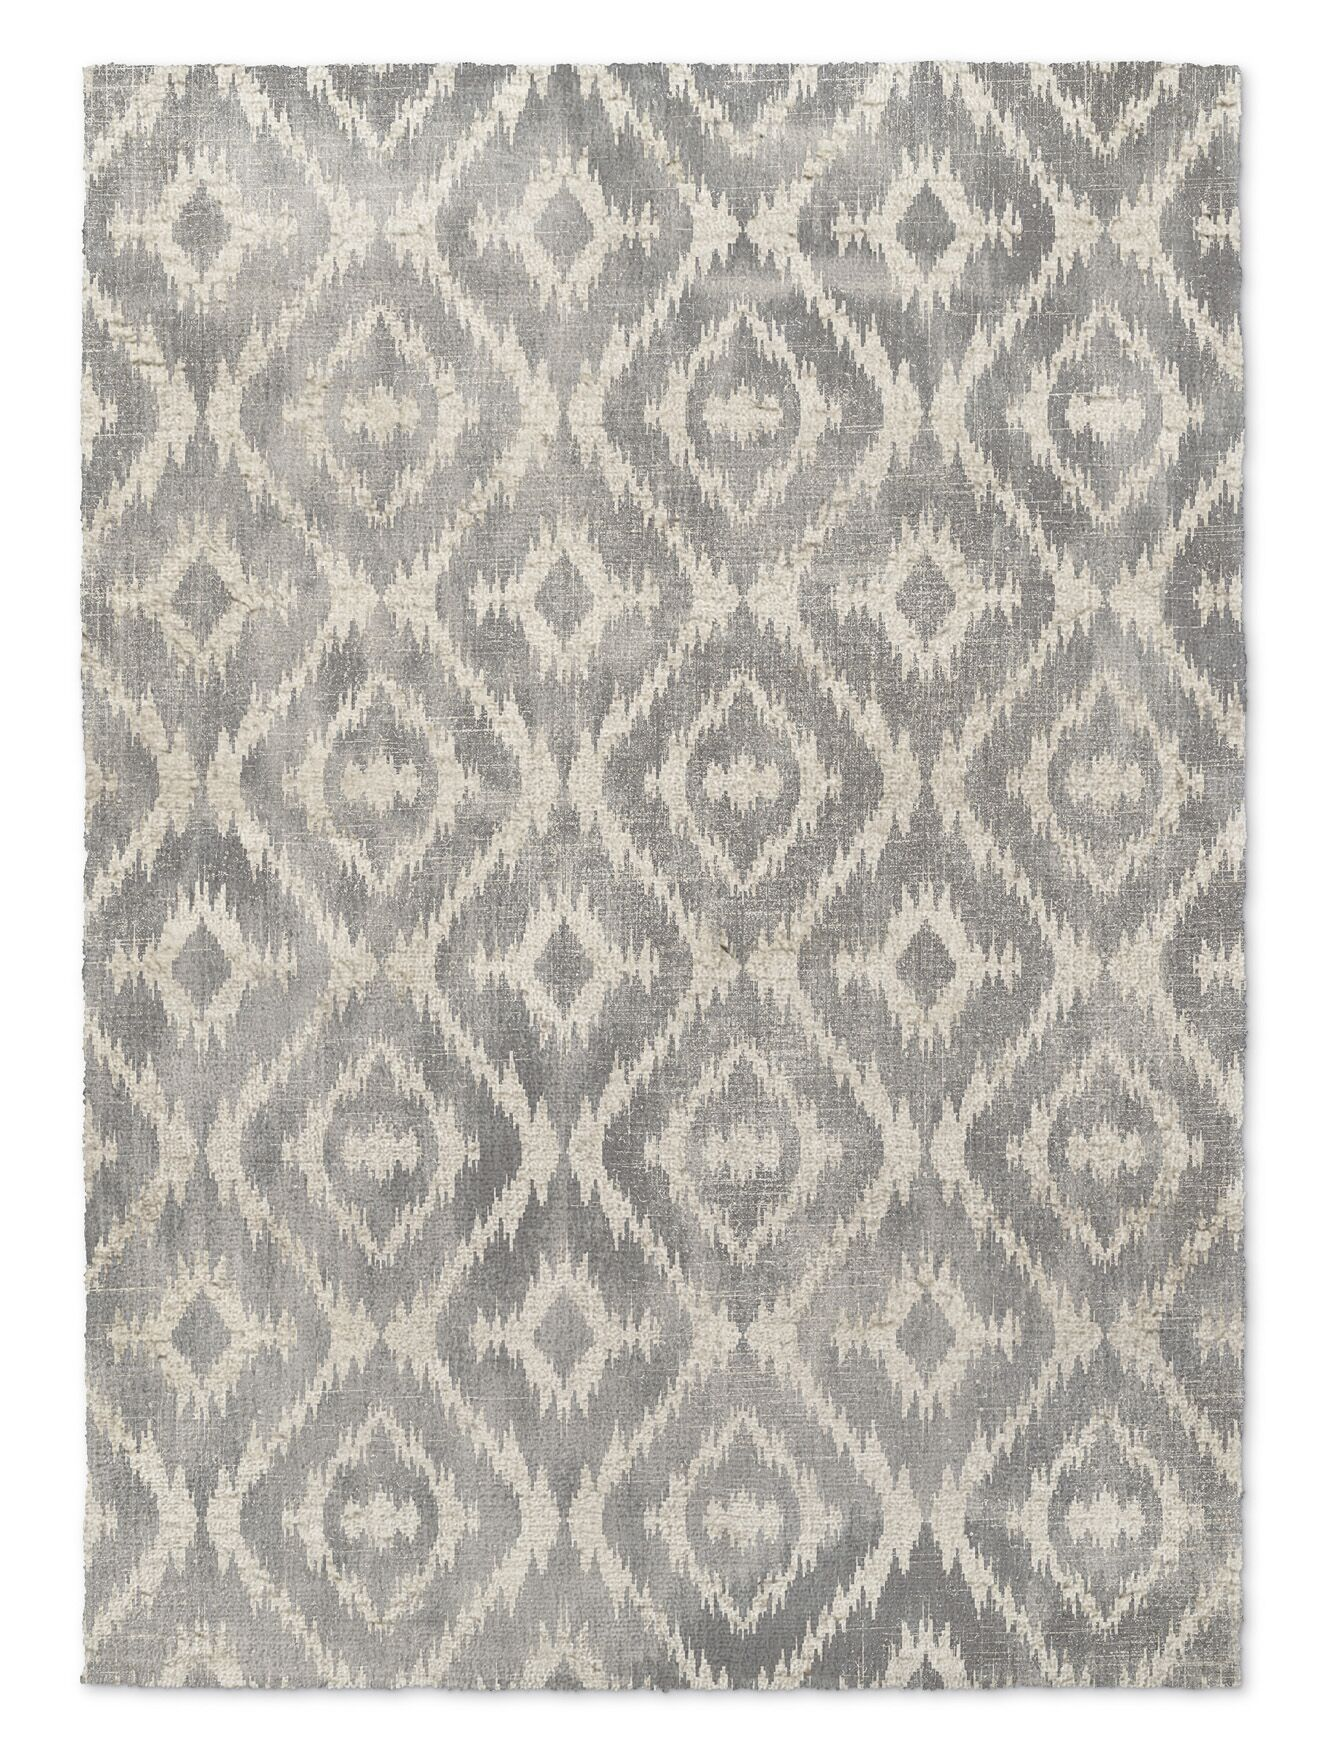 Laplant Gray Area Rug Rug Size: Rectangle 2' x 3'